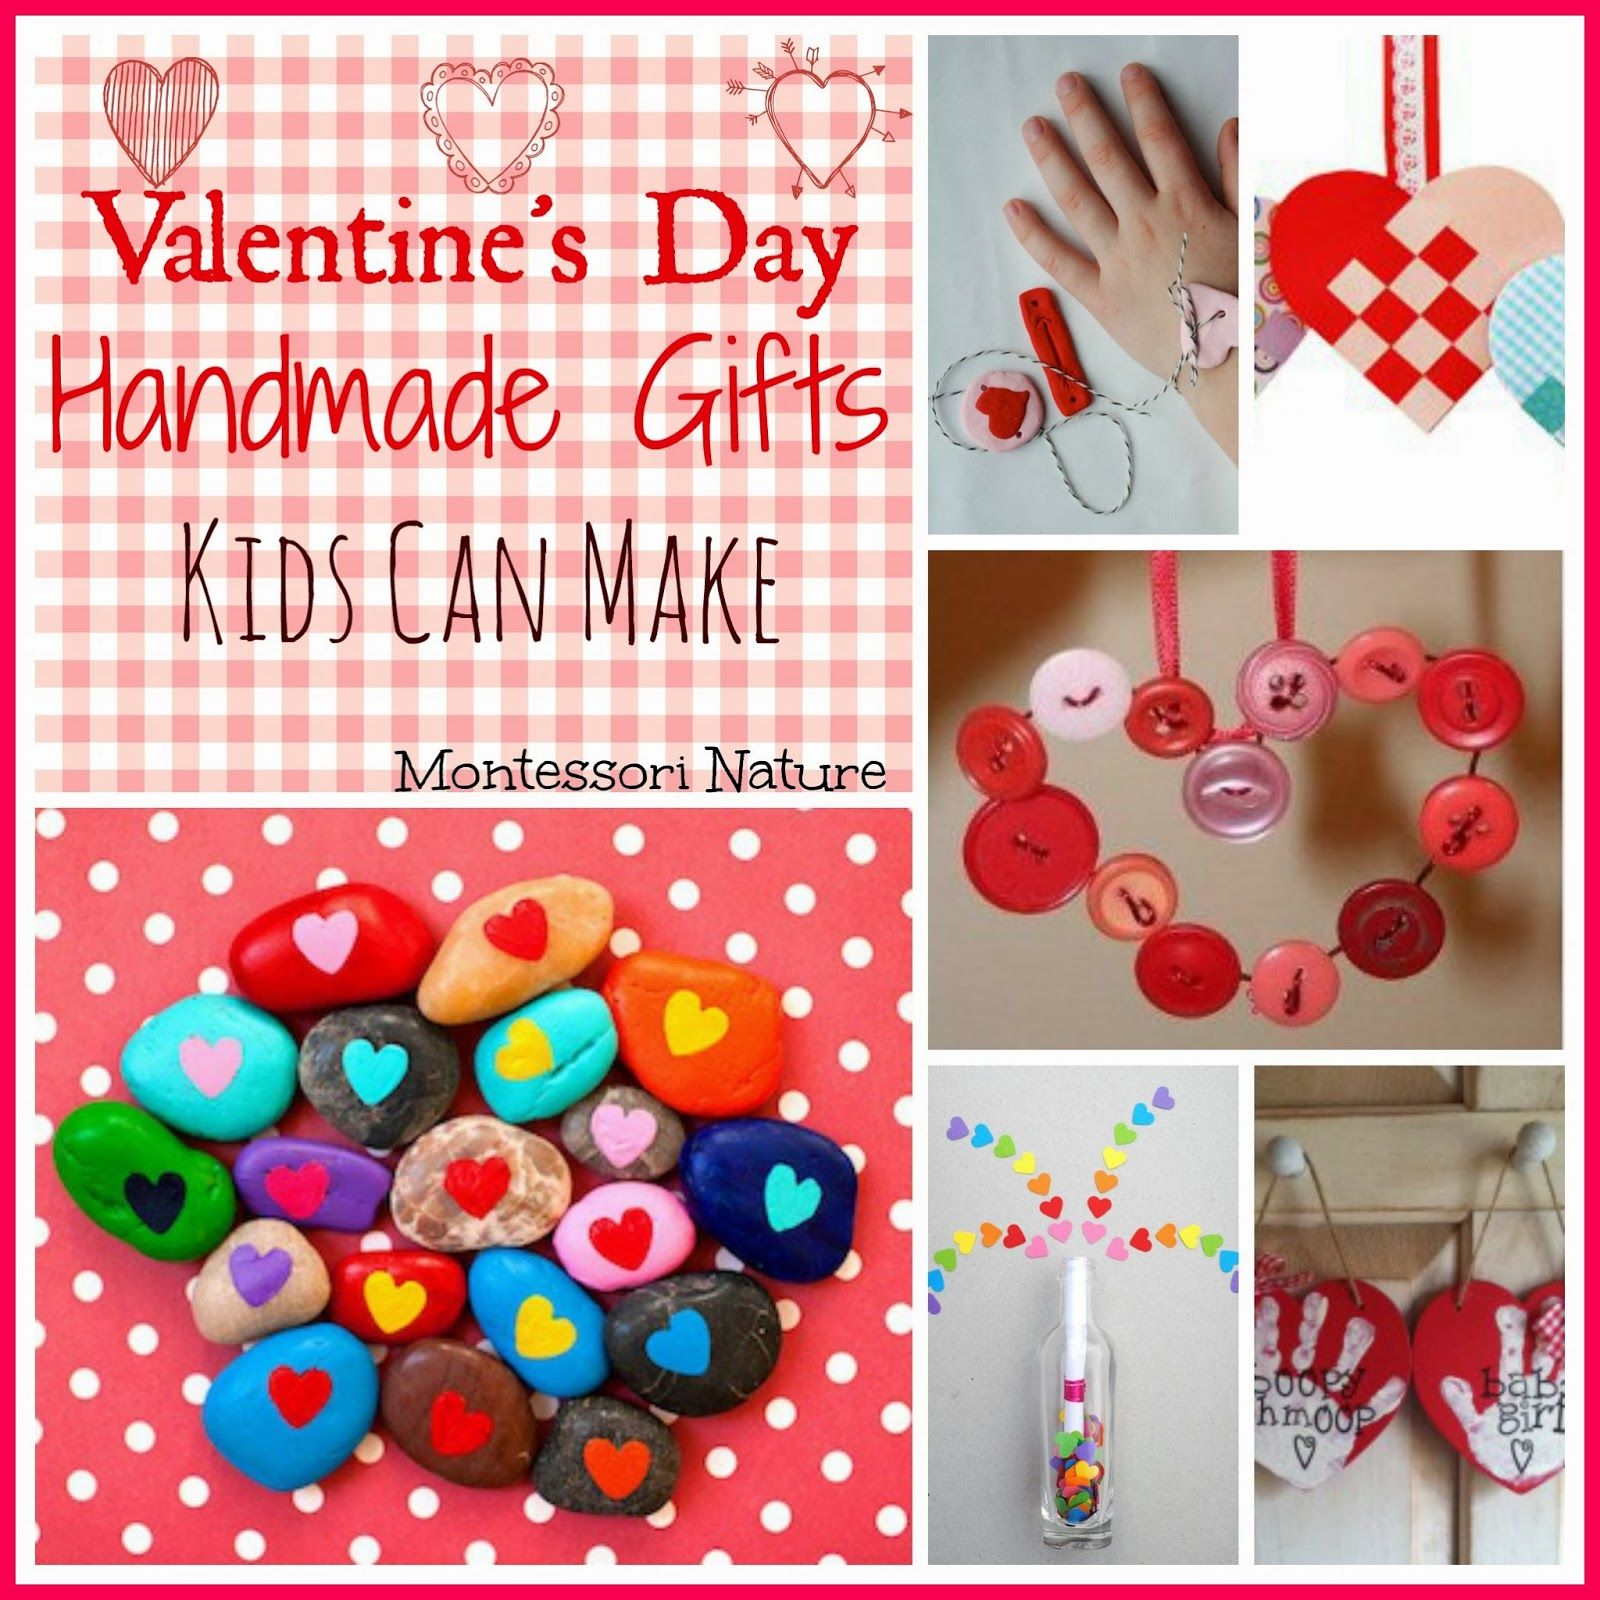 ValentineS Day Handmade Gifts Kids Can Make  Montessori Nature